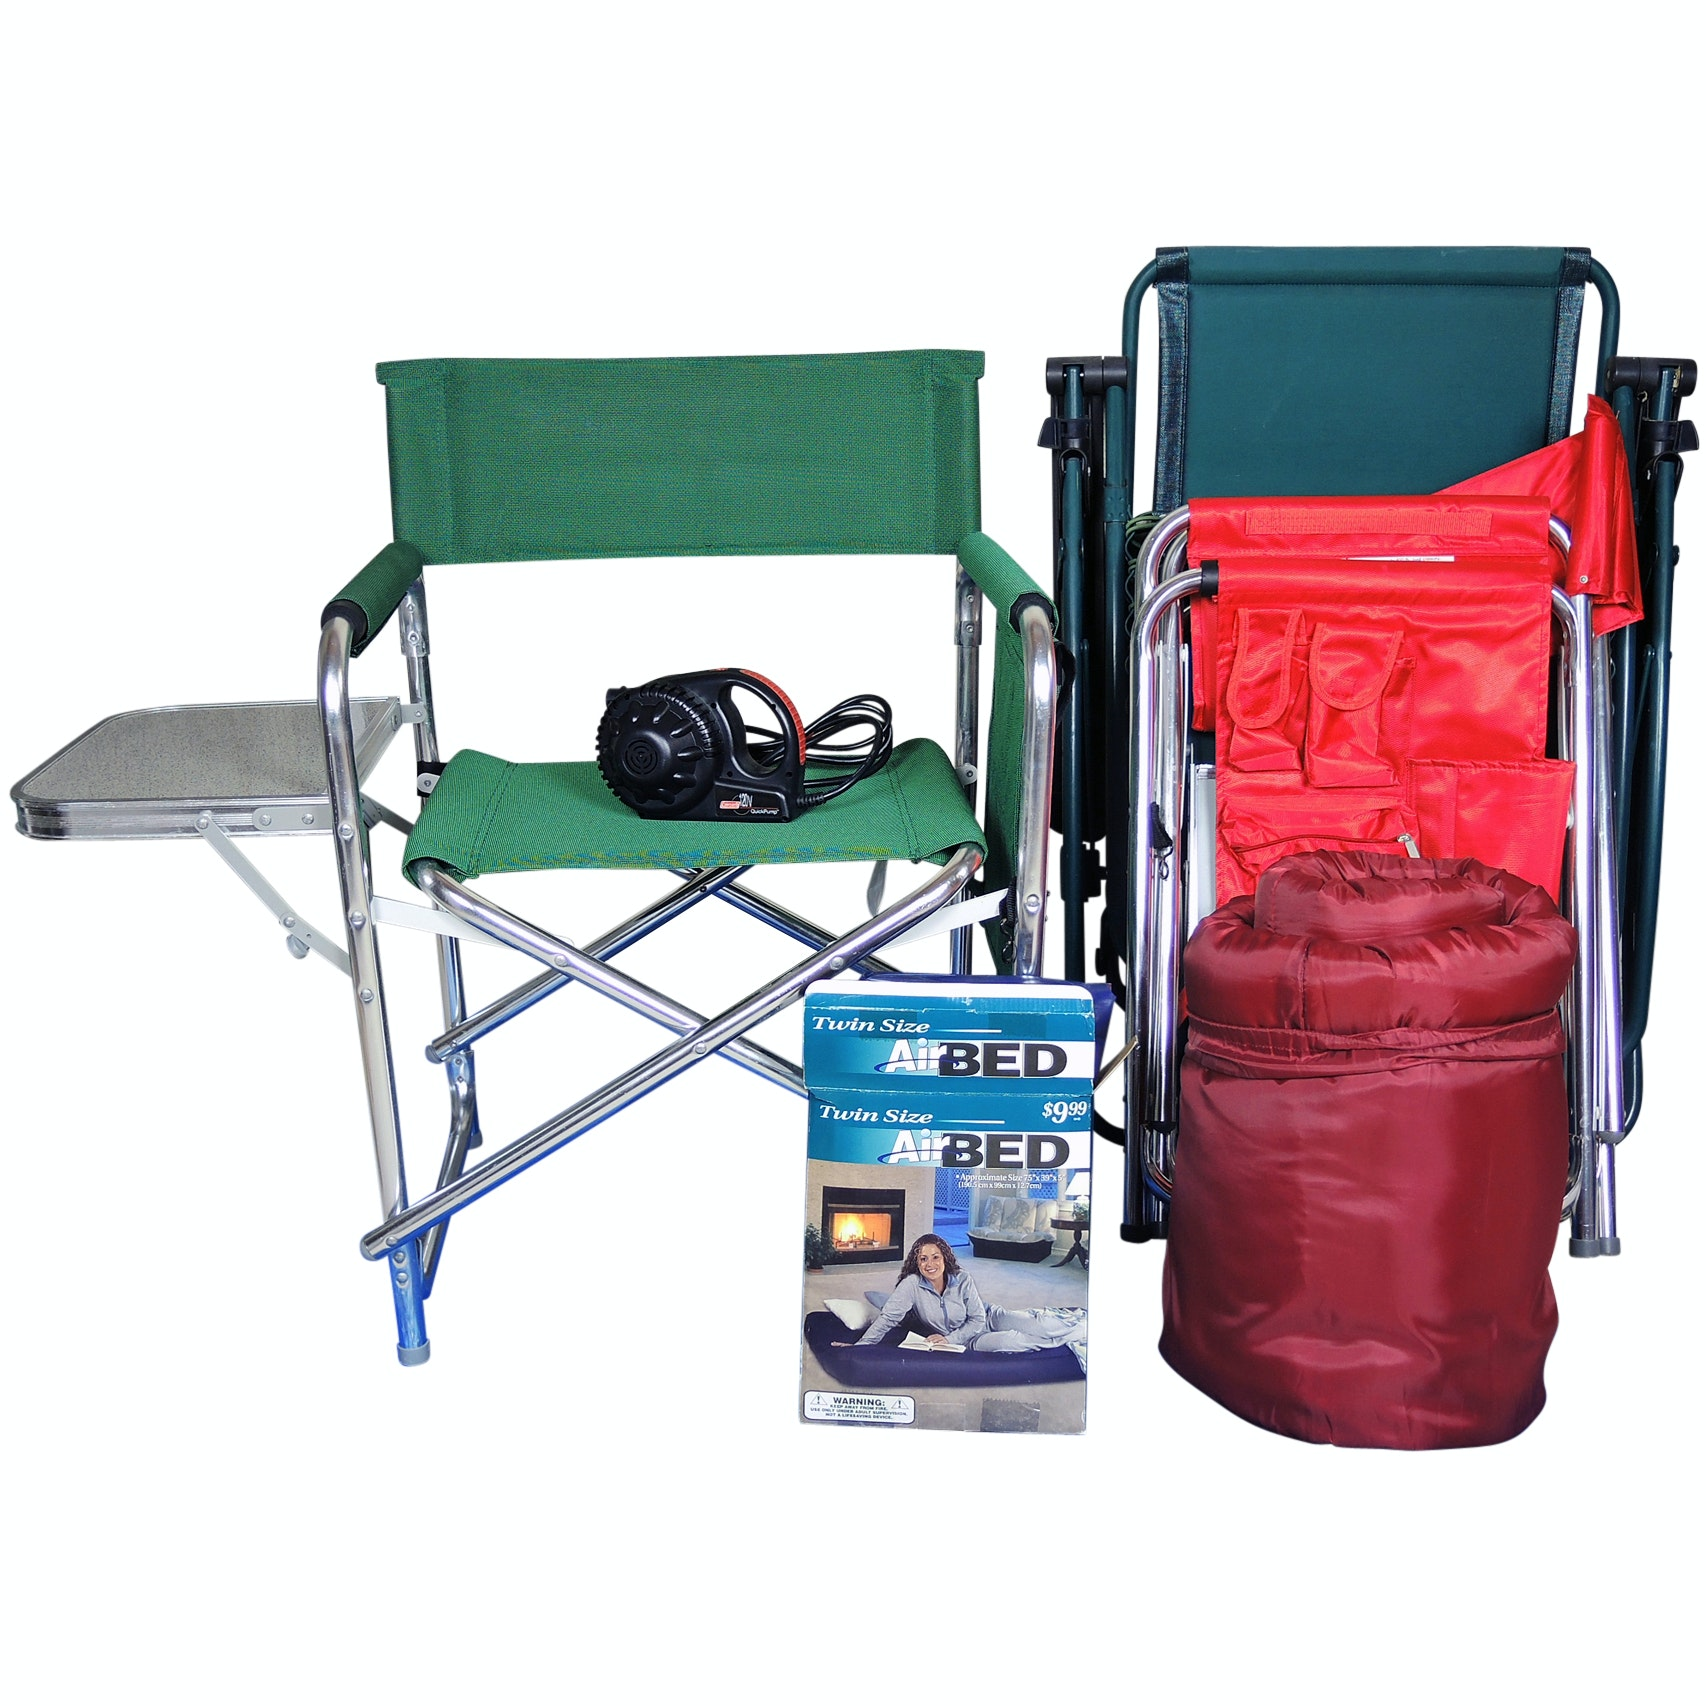 Camping Gear Including Outdoor Folding Chairs with Attached Side Table